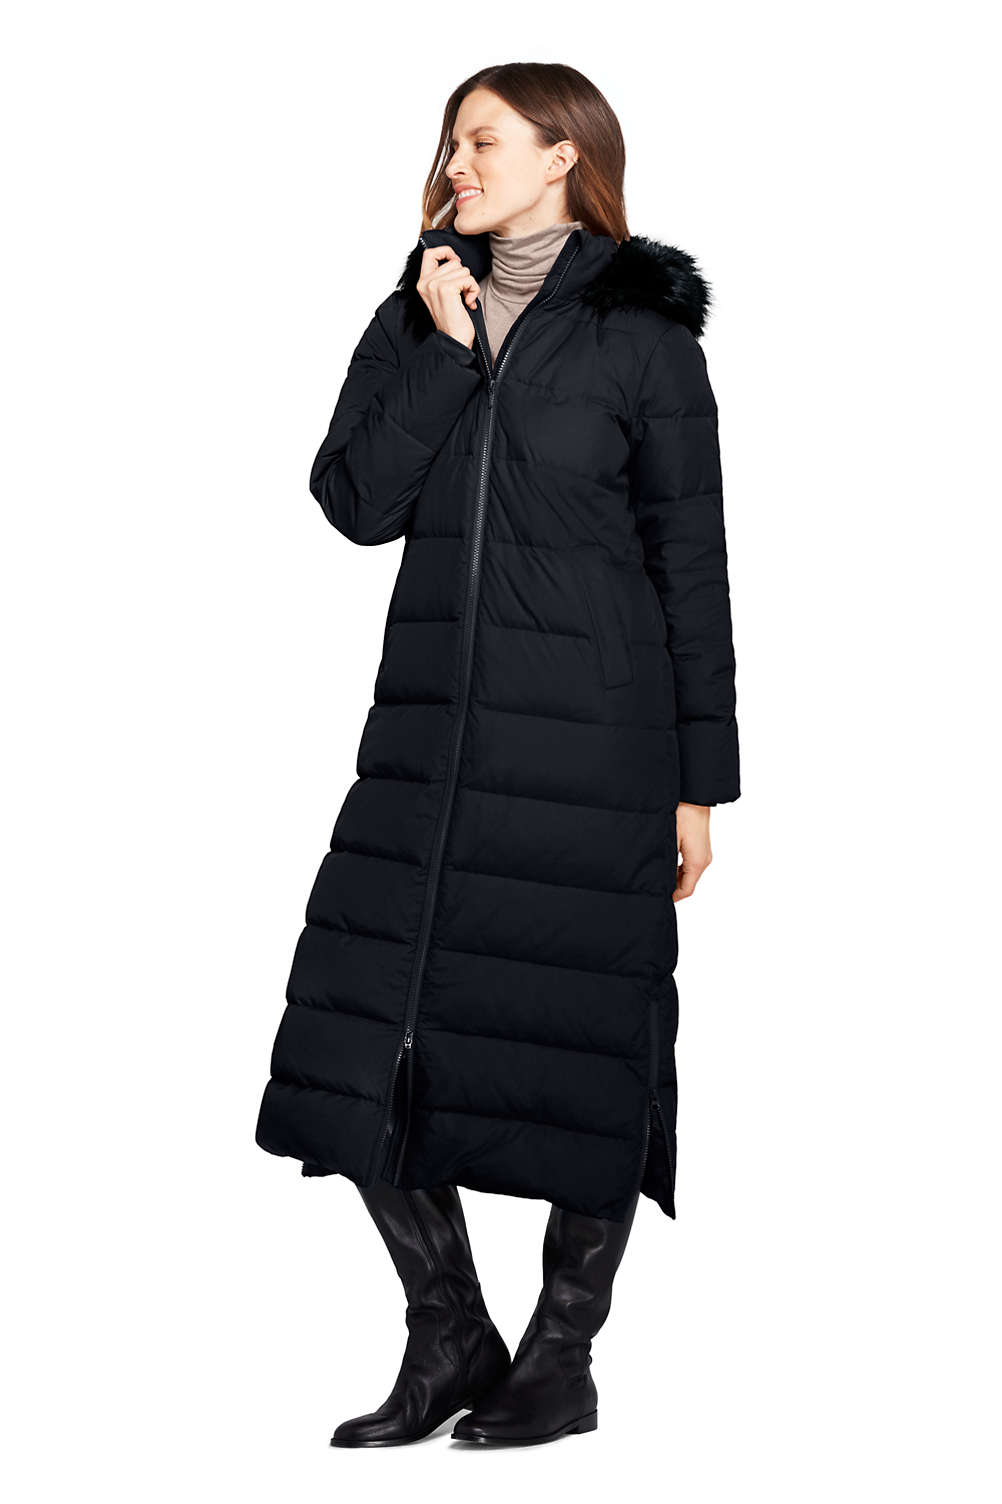 0c3d34be51d95 Women's Winter Long Down Coat with Faux Fur Hood from Lands' End